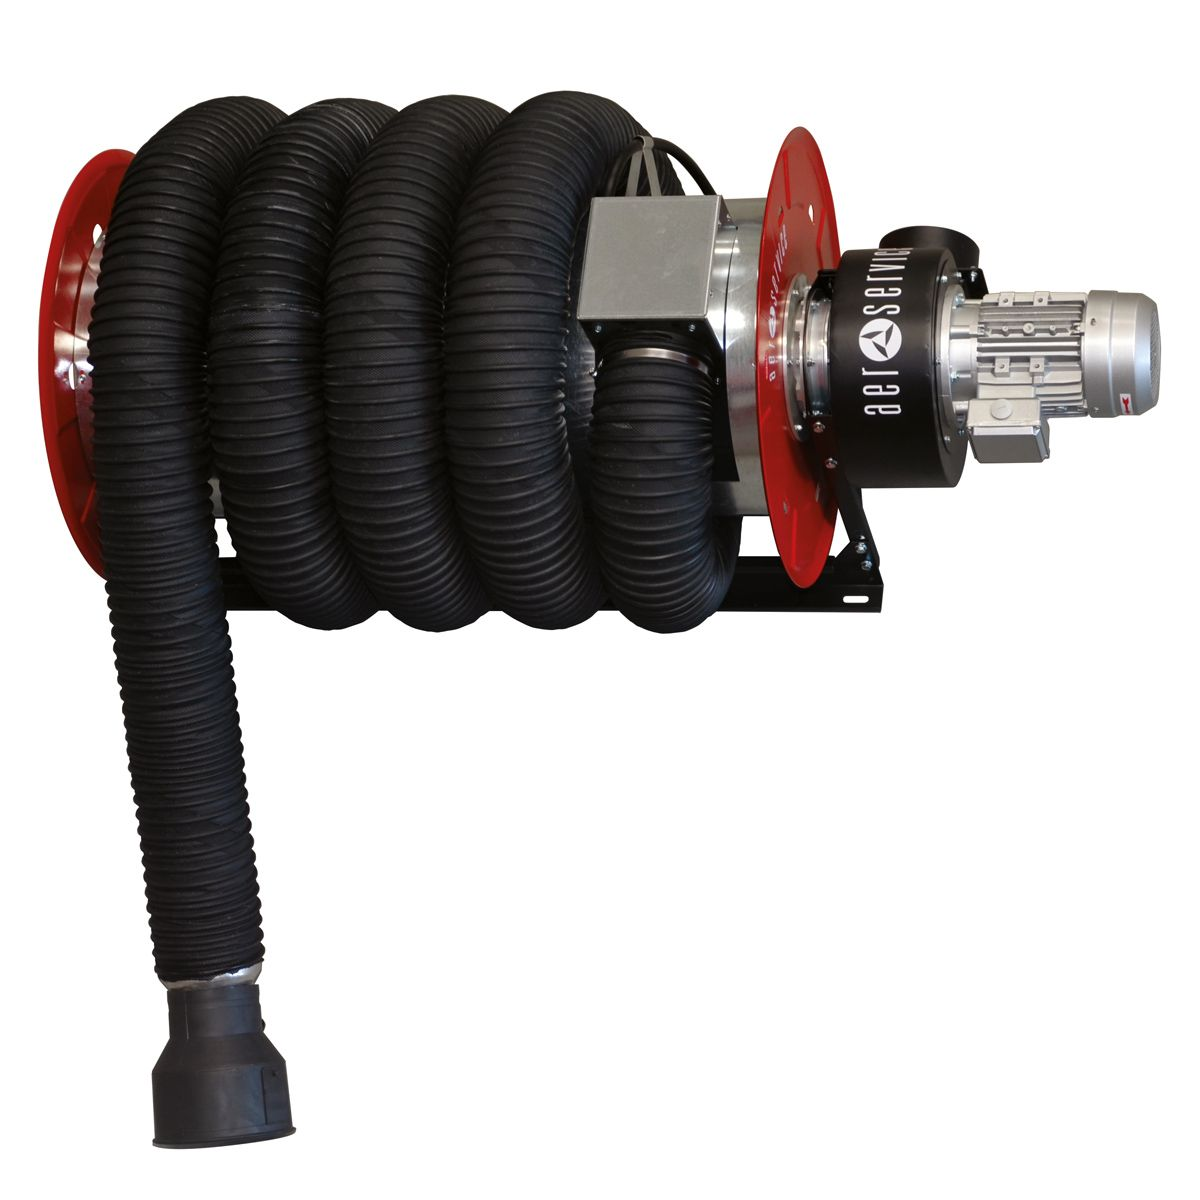 SIP ARHV Wall-Mounted 150mm Hose Reel 400v